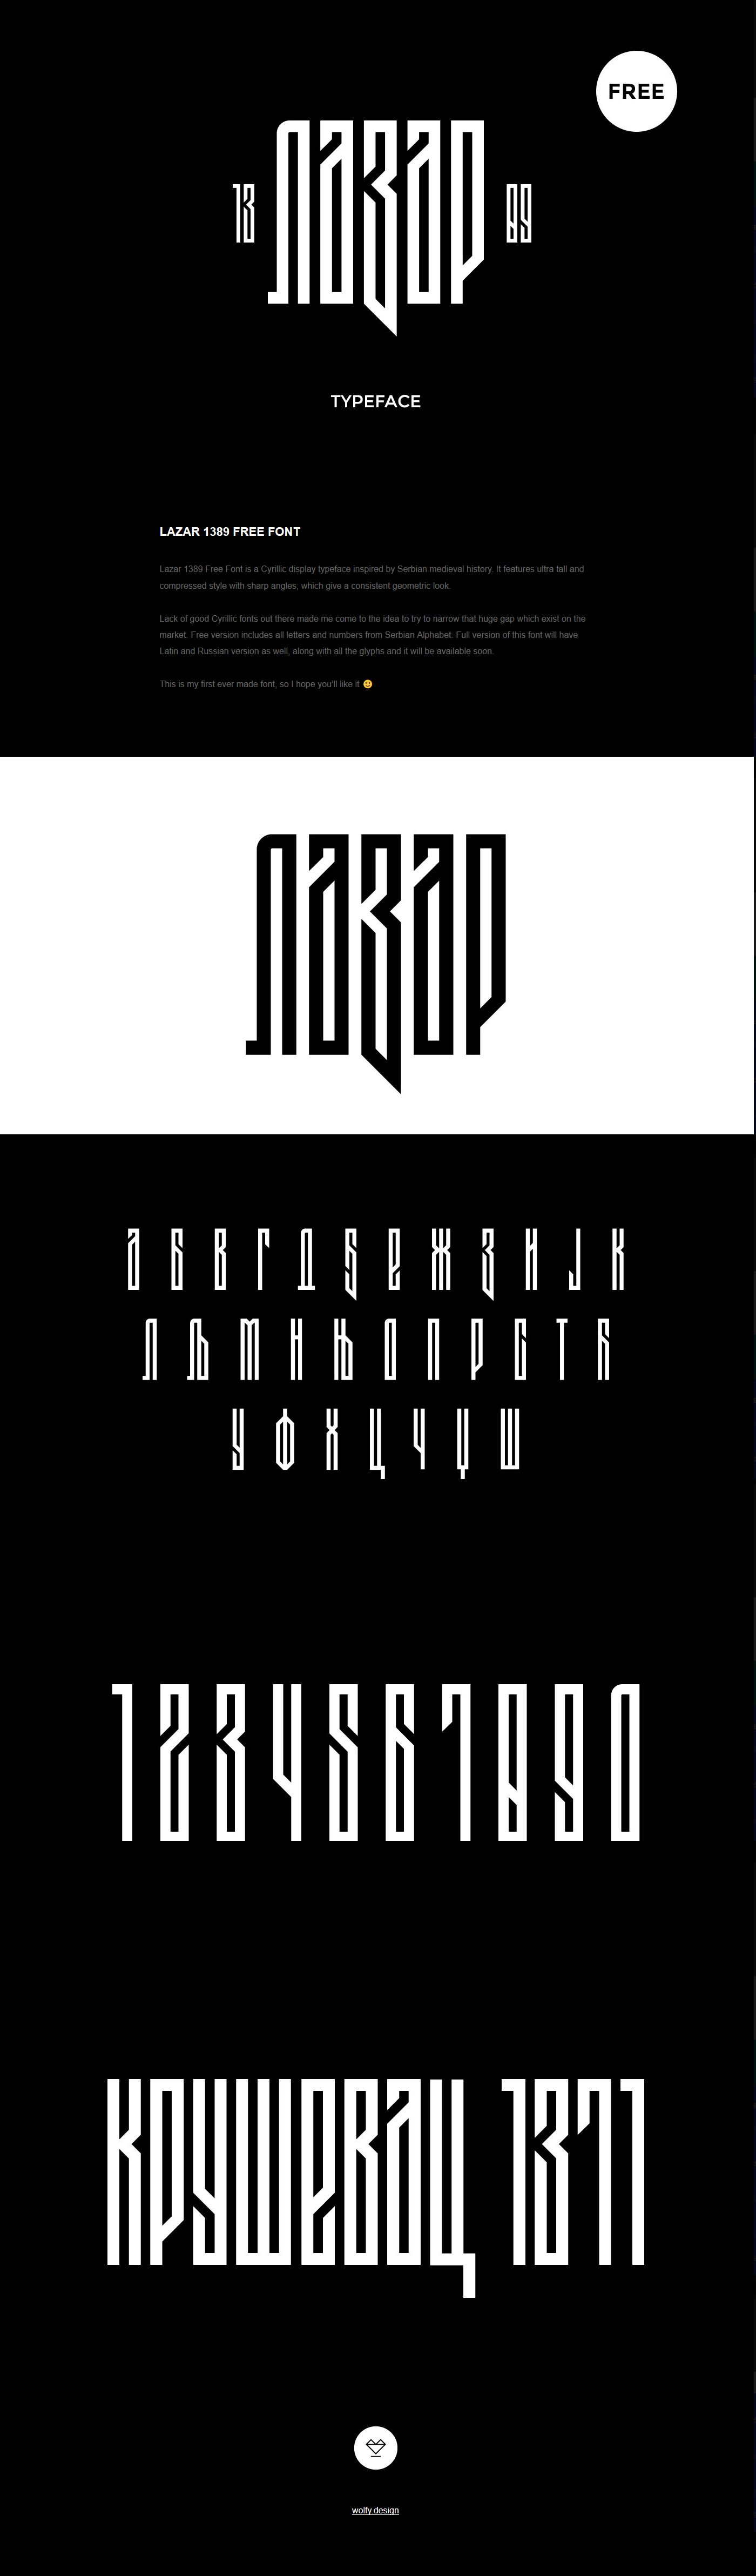 Lazar 1389 Free Font is a Cyrillic display typeface inspired by